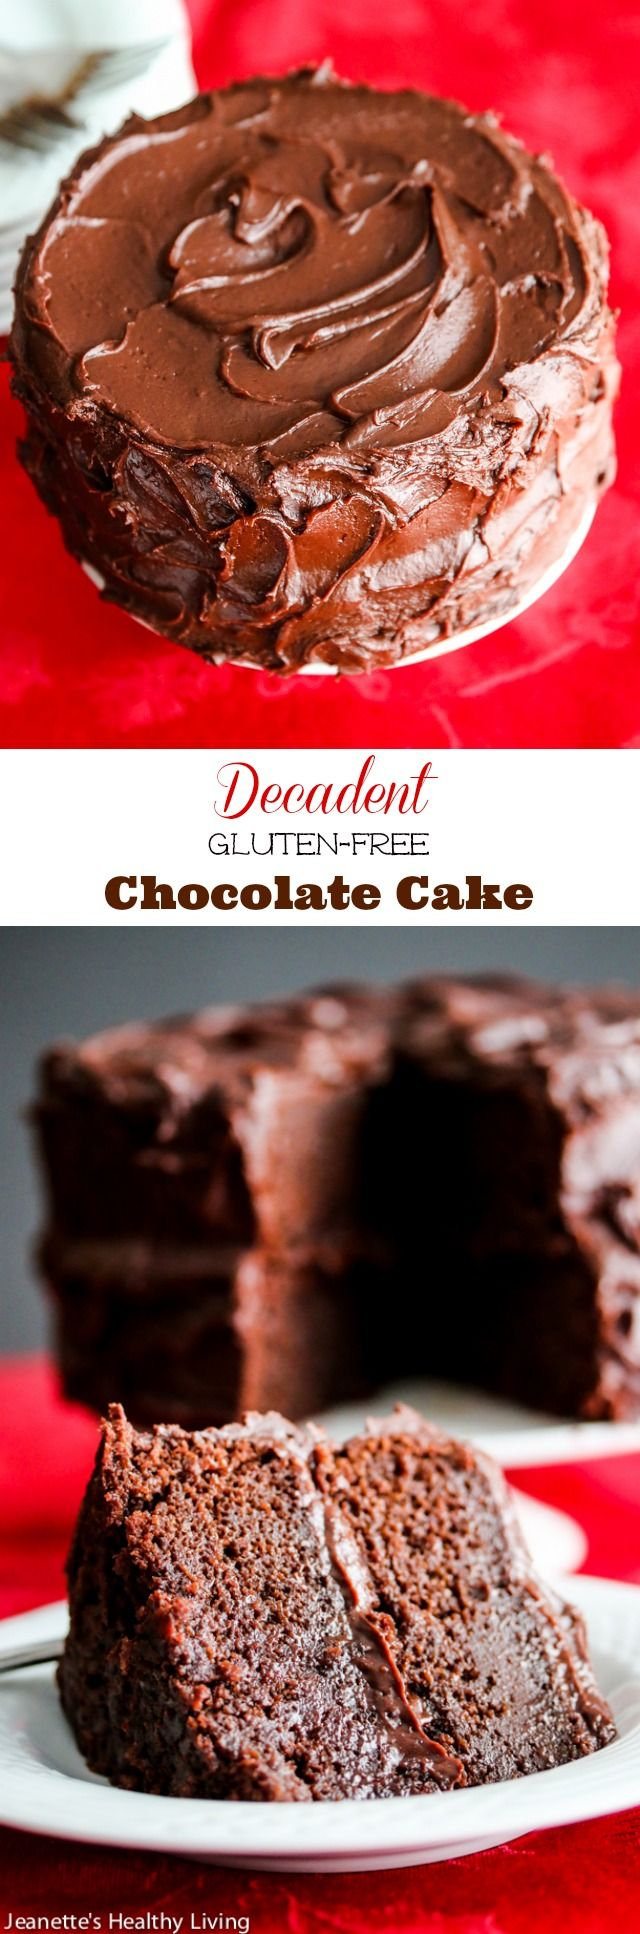 Decadent Gluten-Free Chocolate Cake - so chocolatey and rich, no one will guess it's gluten-free. Perfect for the holiday dessert table #sharedgoodness #sp #fcpinpartners